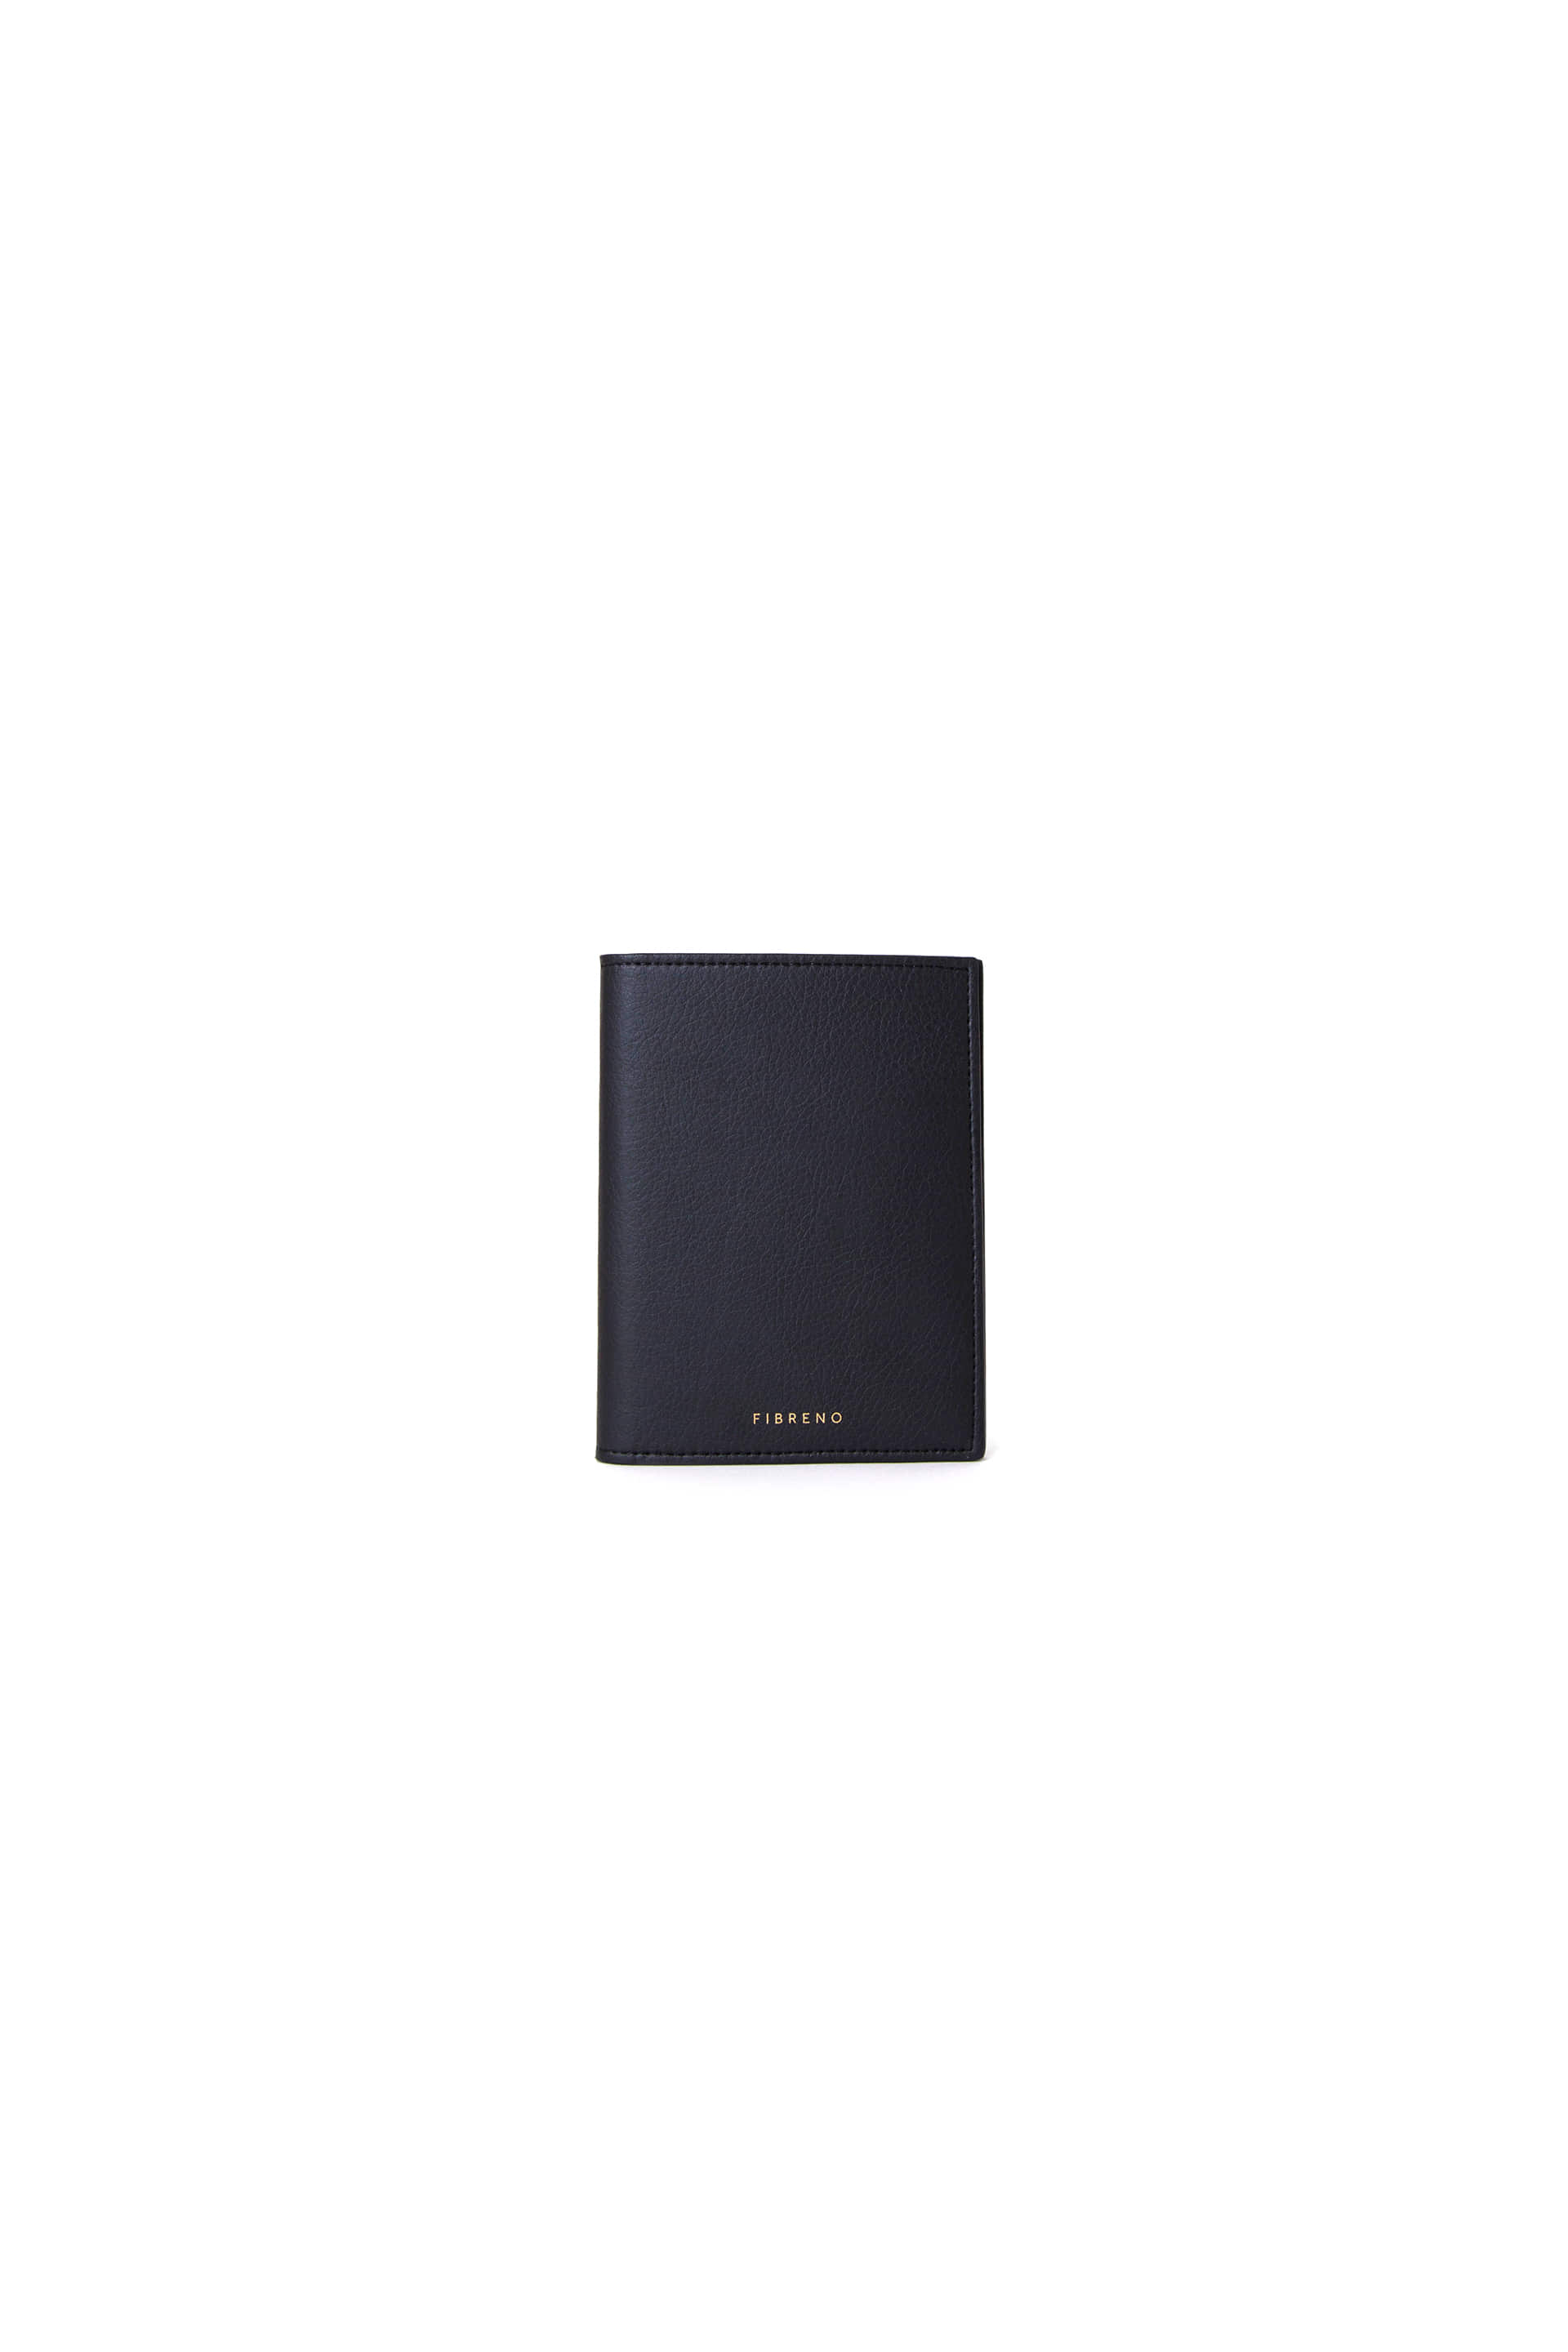 PASSPORT CASE 22 Black